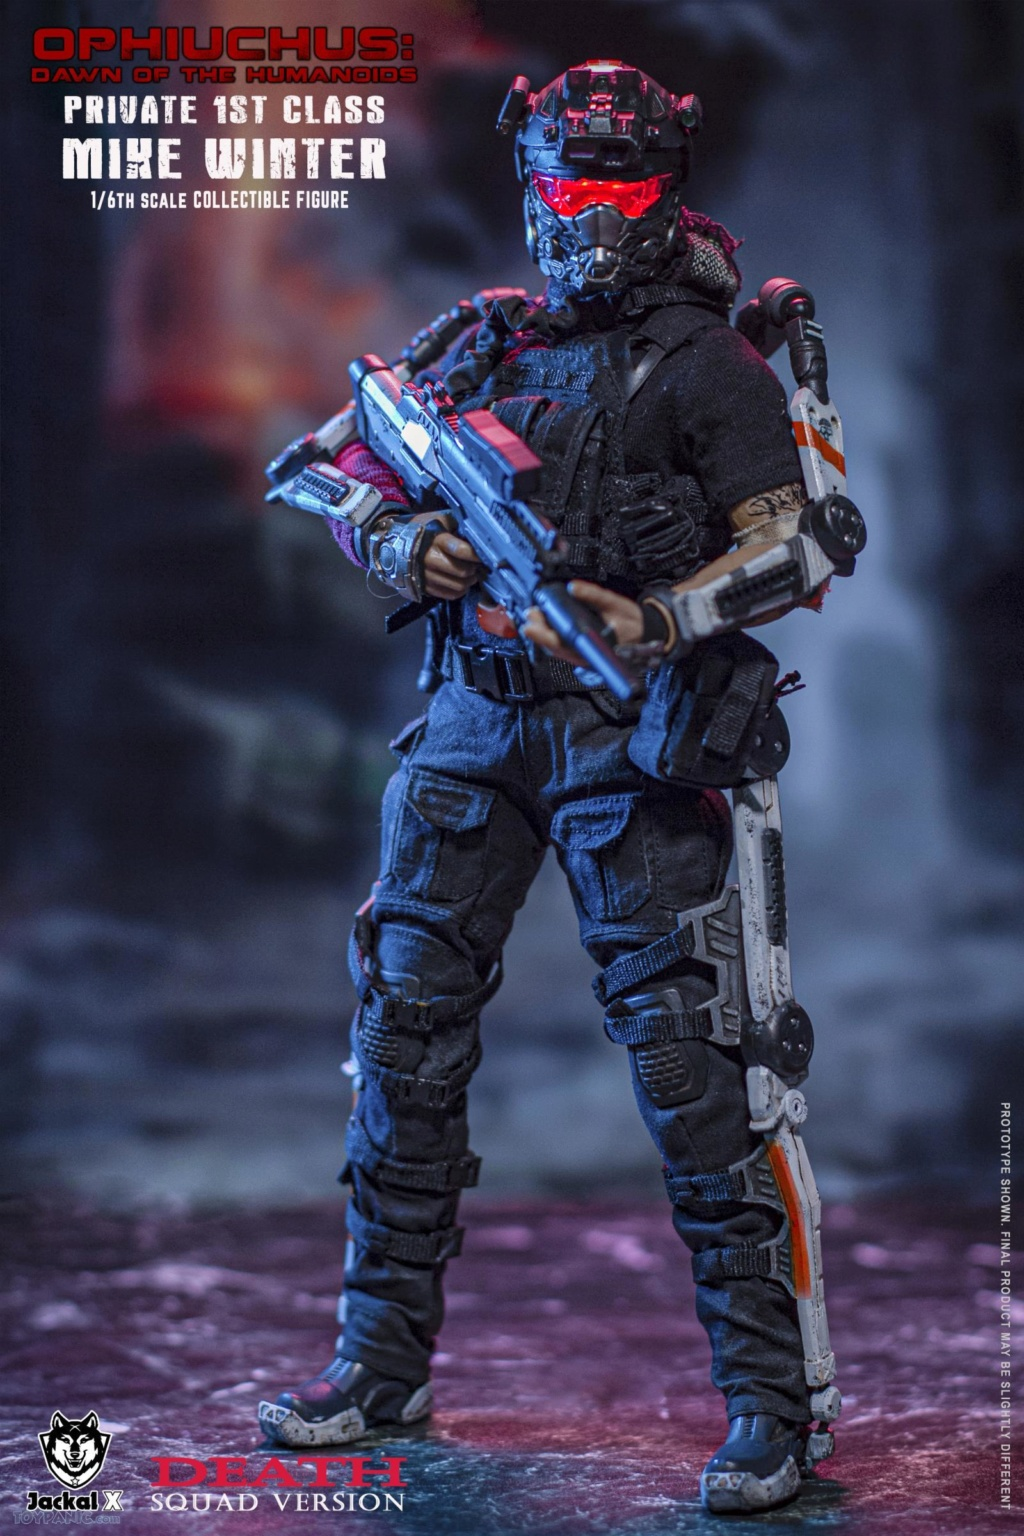 male - NEW PRODUCT: JackalX: 1/6 Ophiuchus: Dawn of Humanoid: Private 1st Class Mike Winter Collectible Figure (2 Versions) 43202032